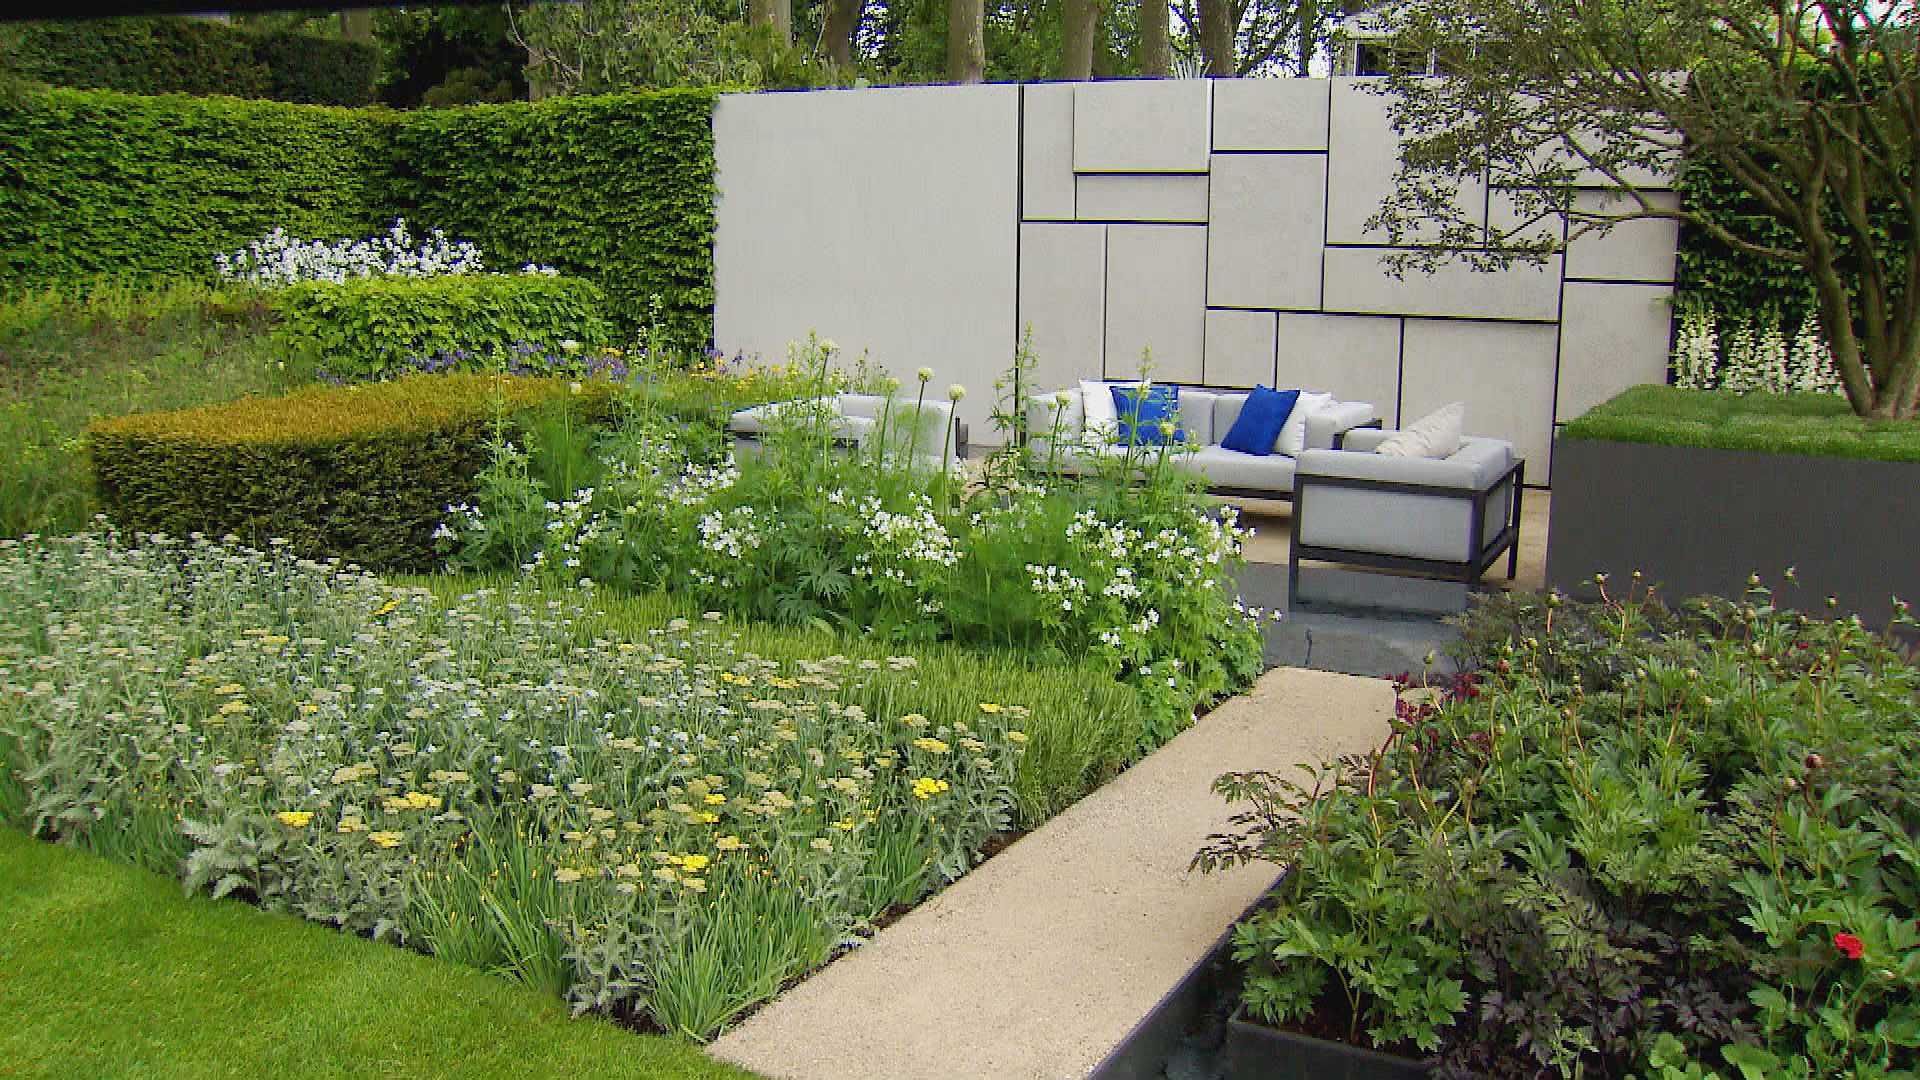 Chelsea Flower Show Garden Competition - Garden Design